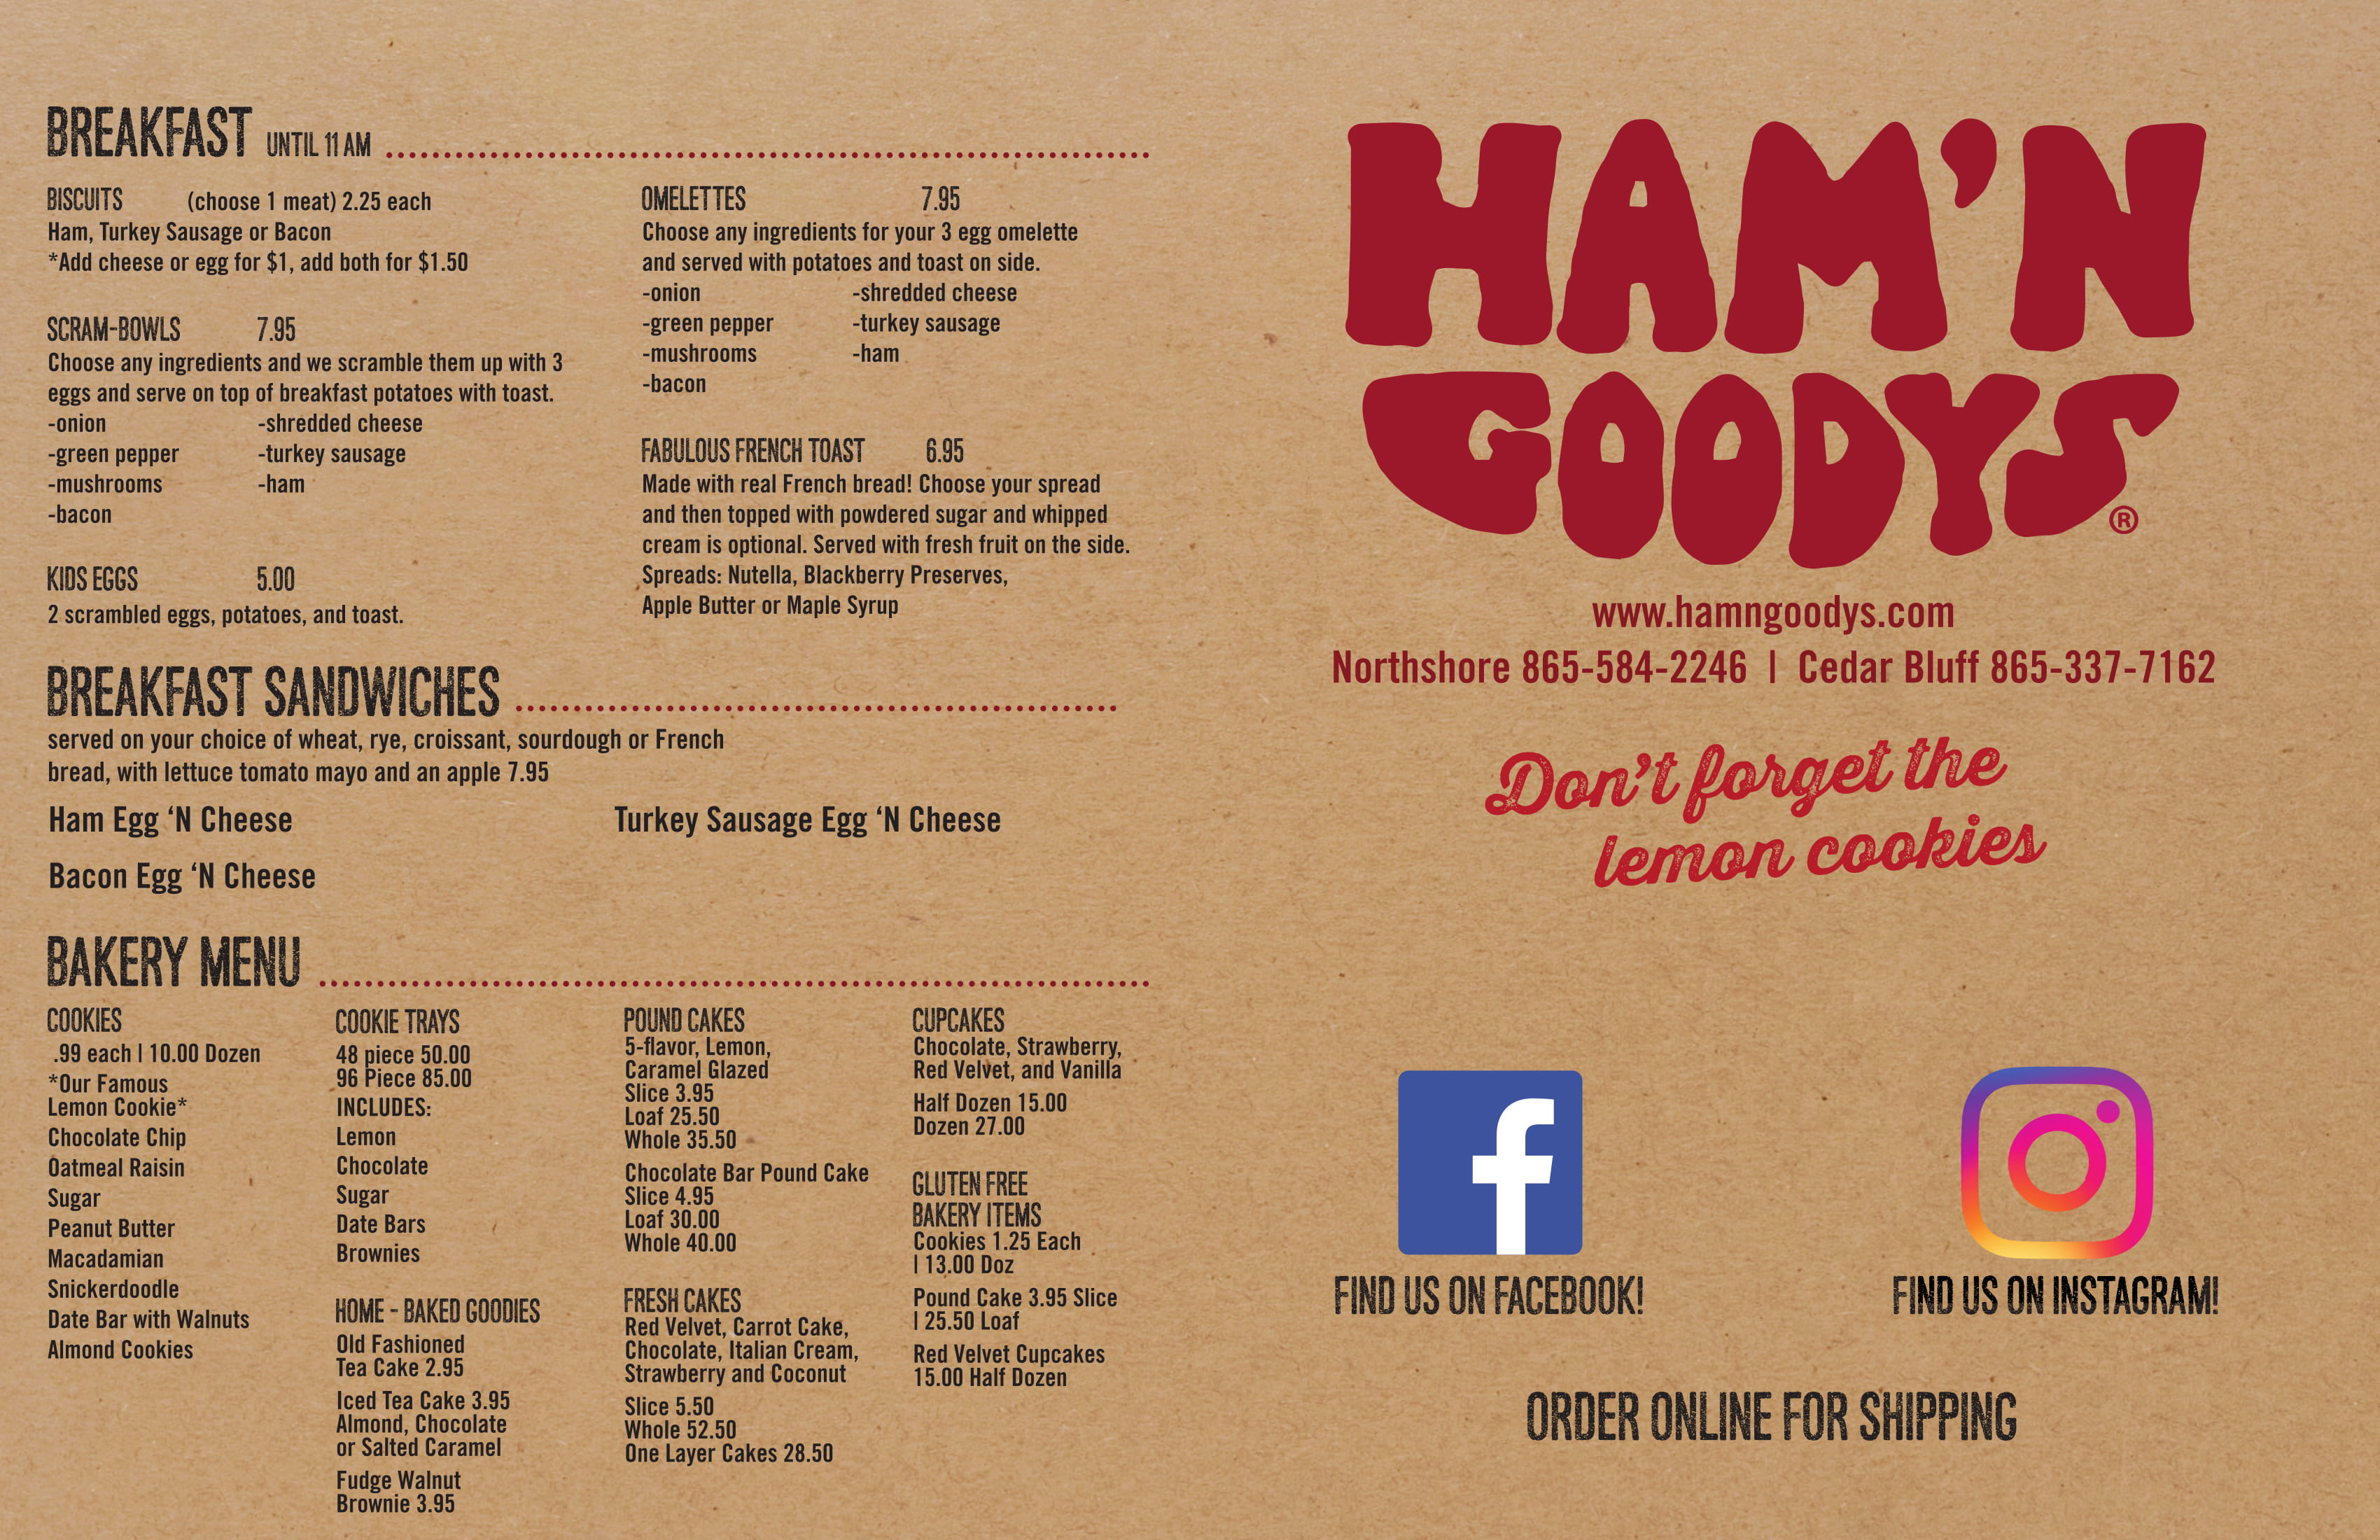 Ham__N_Goodys_Menu_Aug_2019-1